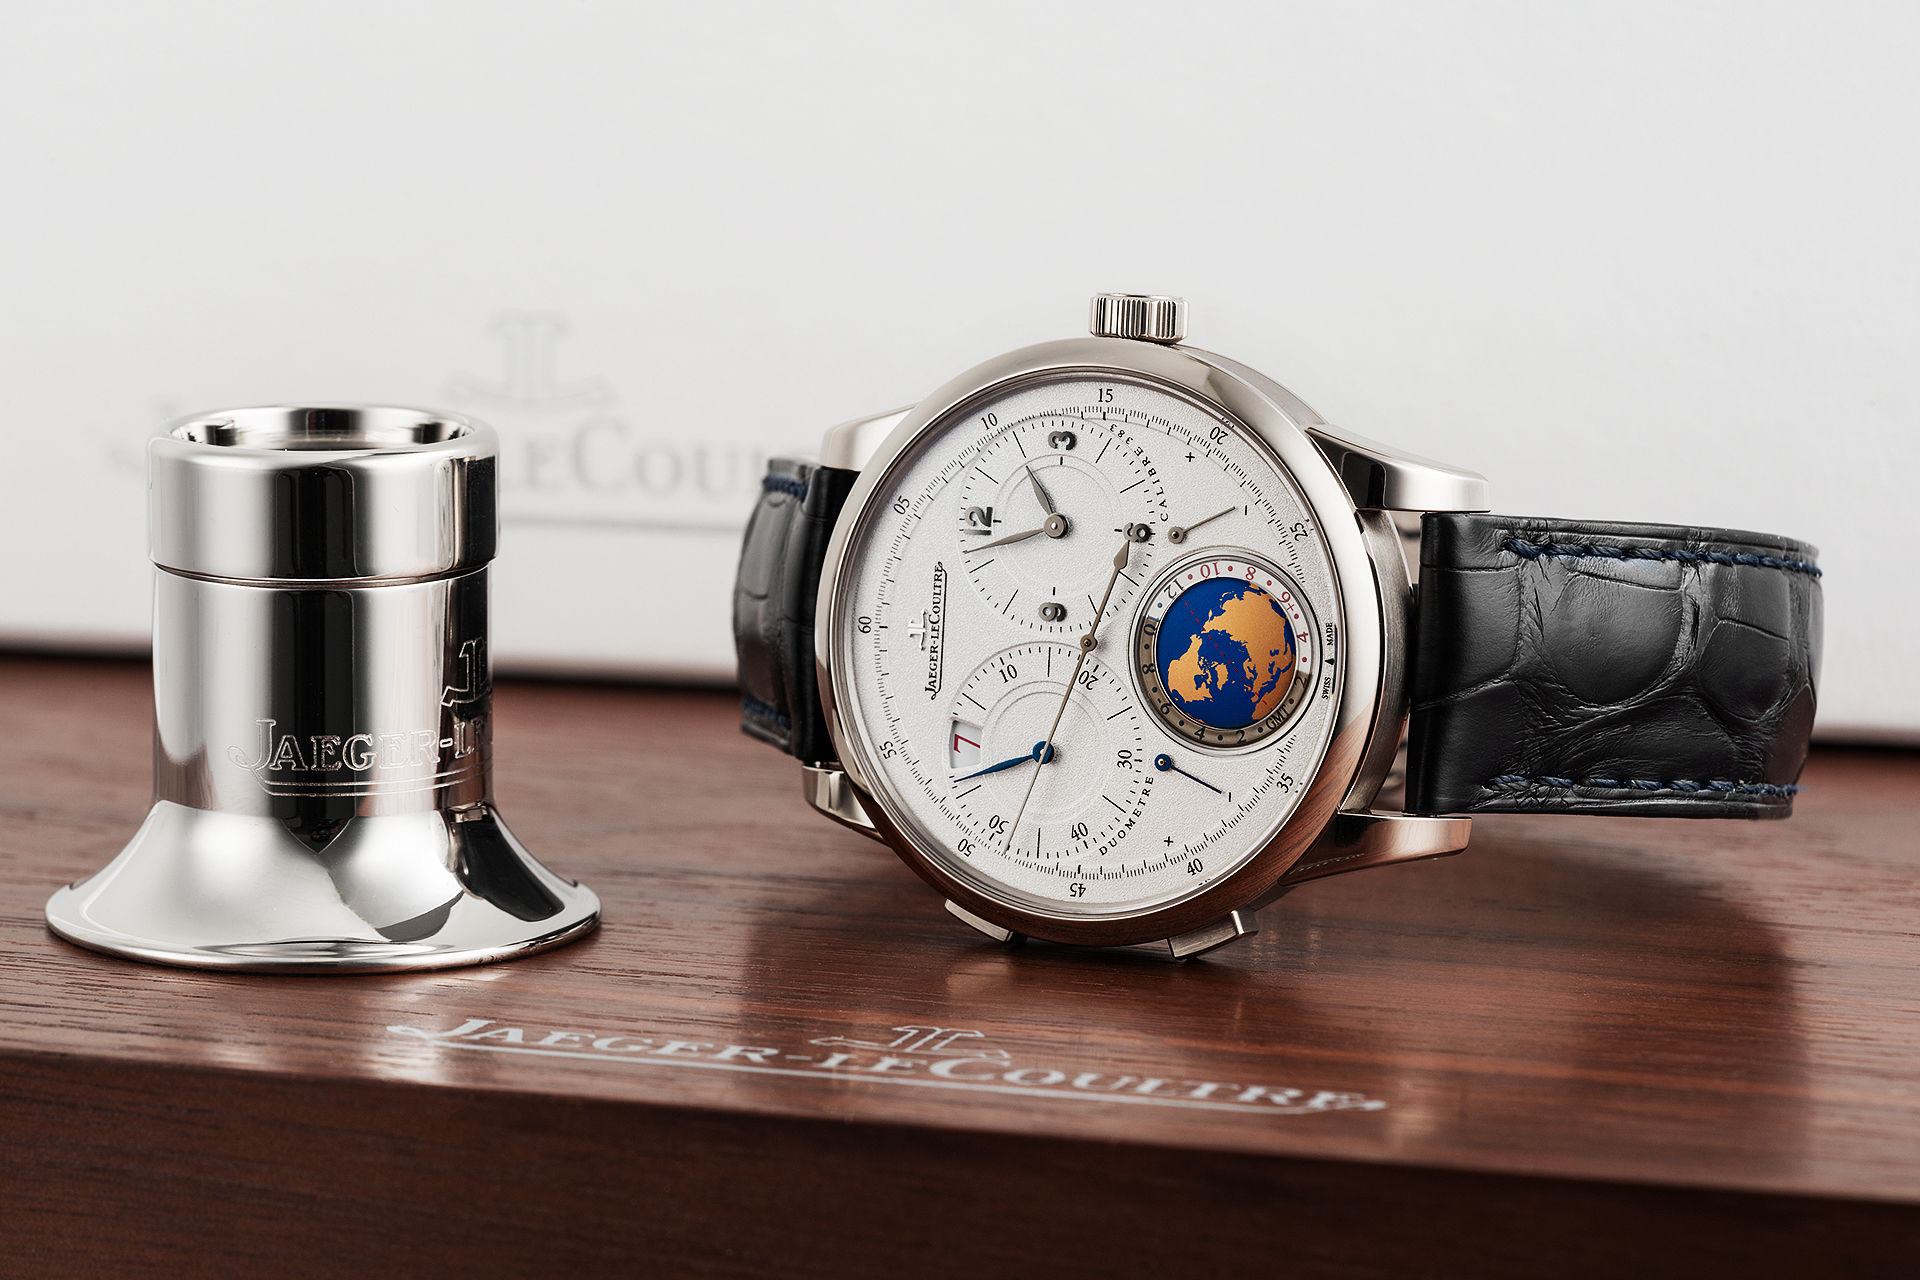 ref 600.3.16.S | 'Limited Parisian Edition'  | Jaeger-leCoultre Duometre Travel Time